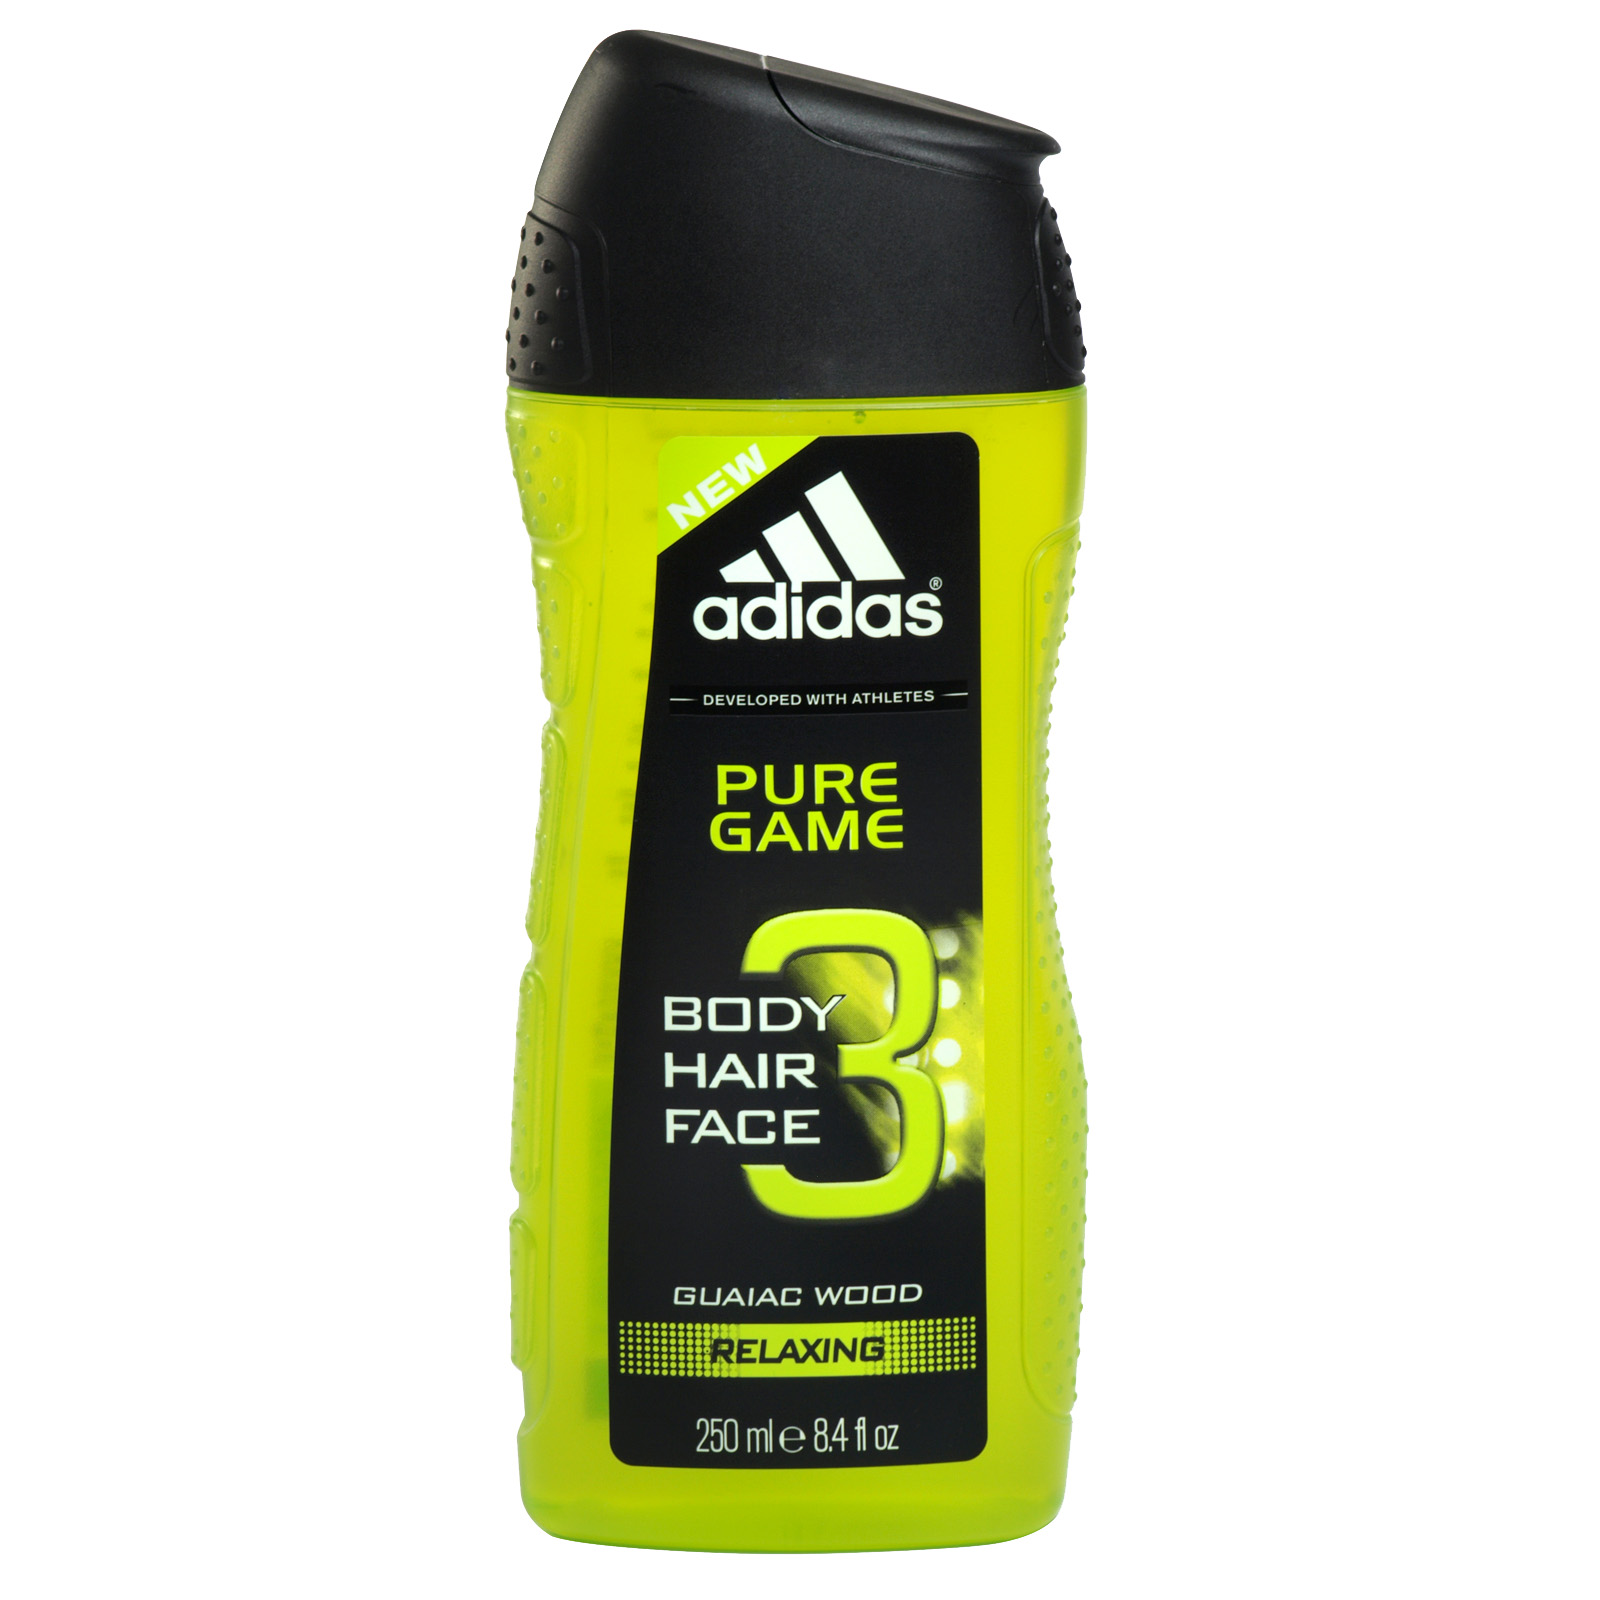 ADIDAS HAIR BODY & FACE 3IN1 SHOWER GEL 250ML PURE GAME X6